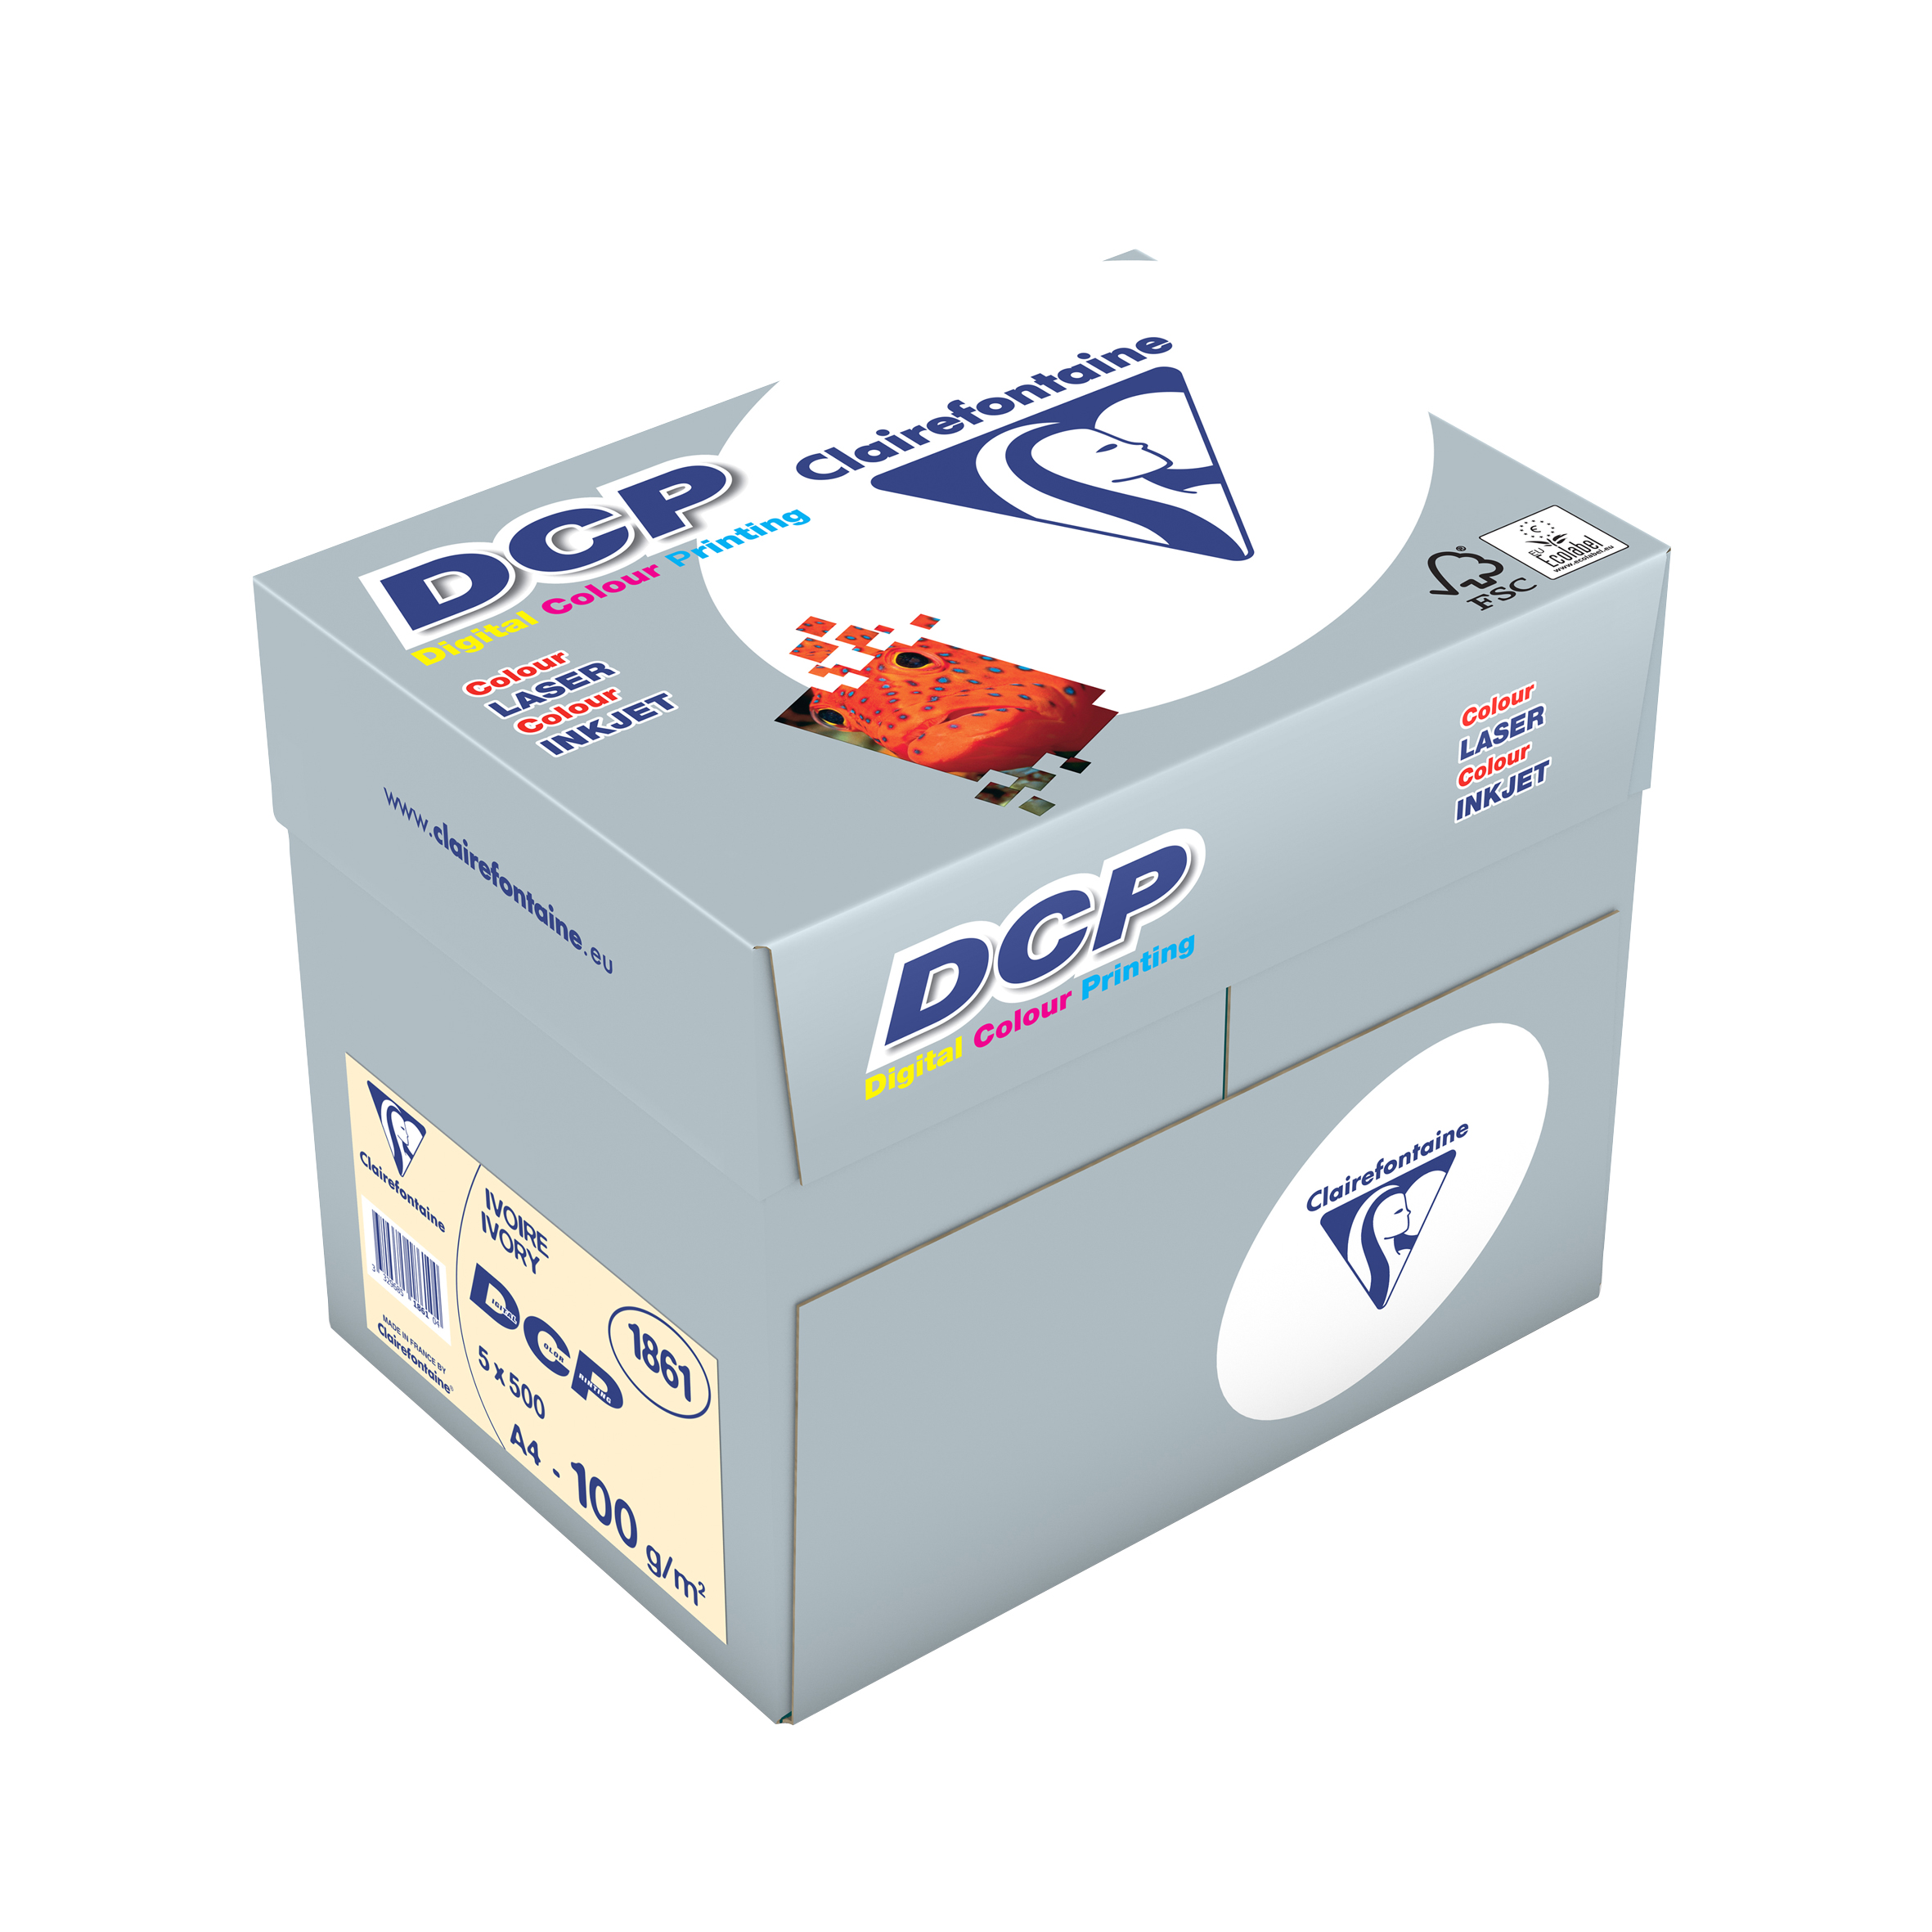 Clairefontaine DCP Ivory elfenbein digital color printing 100g/m² DIN-A4 2500 Blatt 1861C